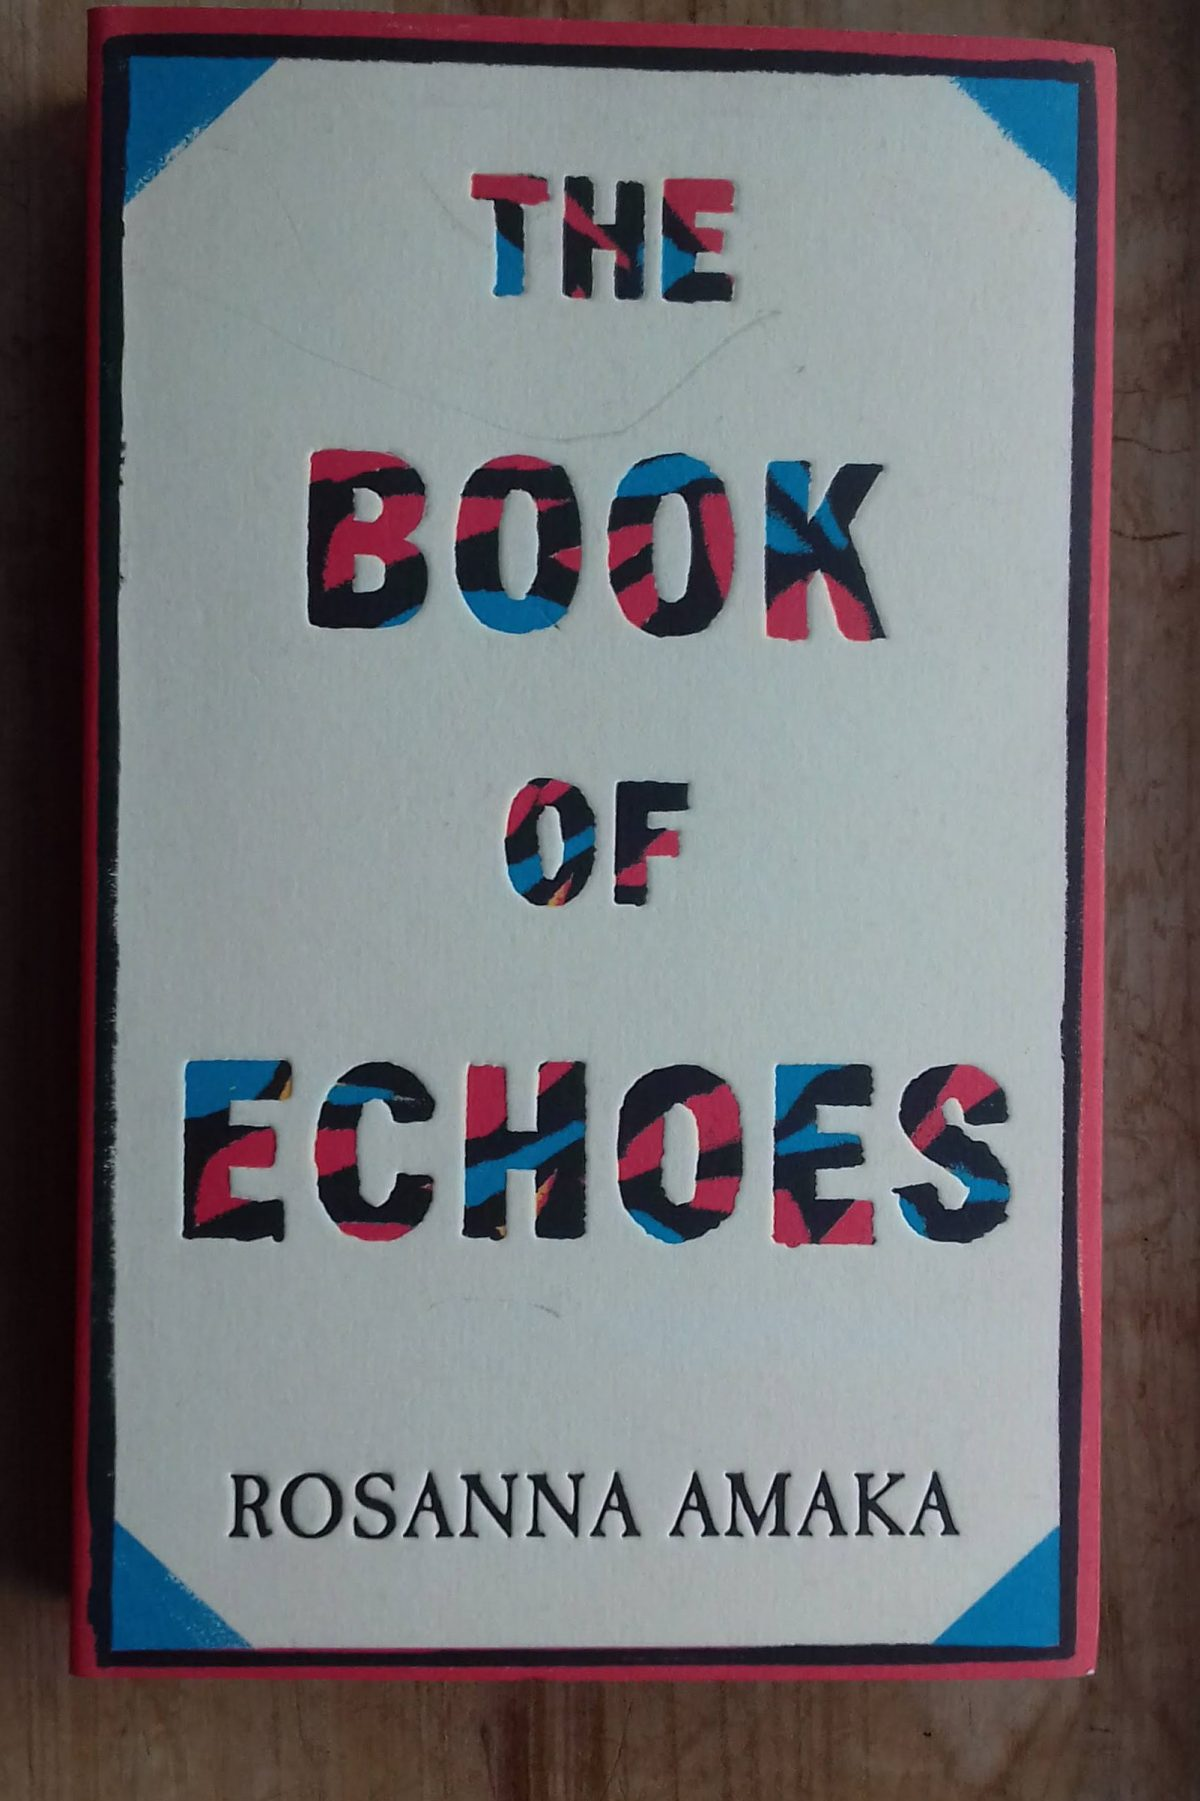 Book review: The Book of Echoes by Rosanna Amaka